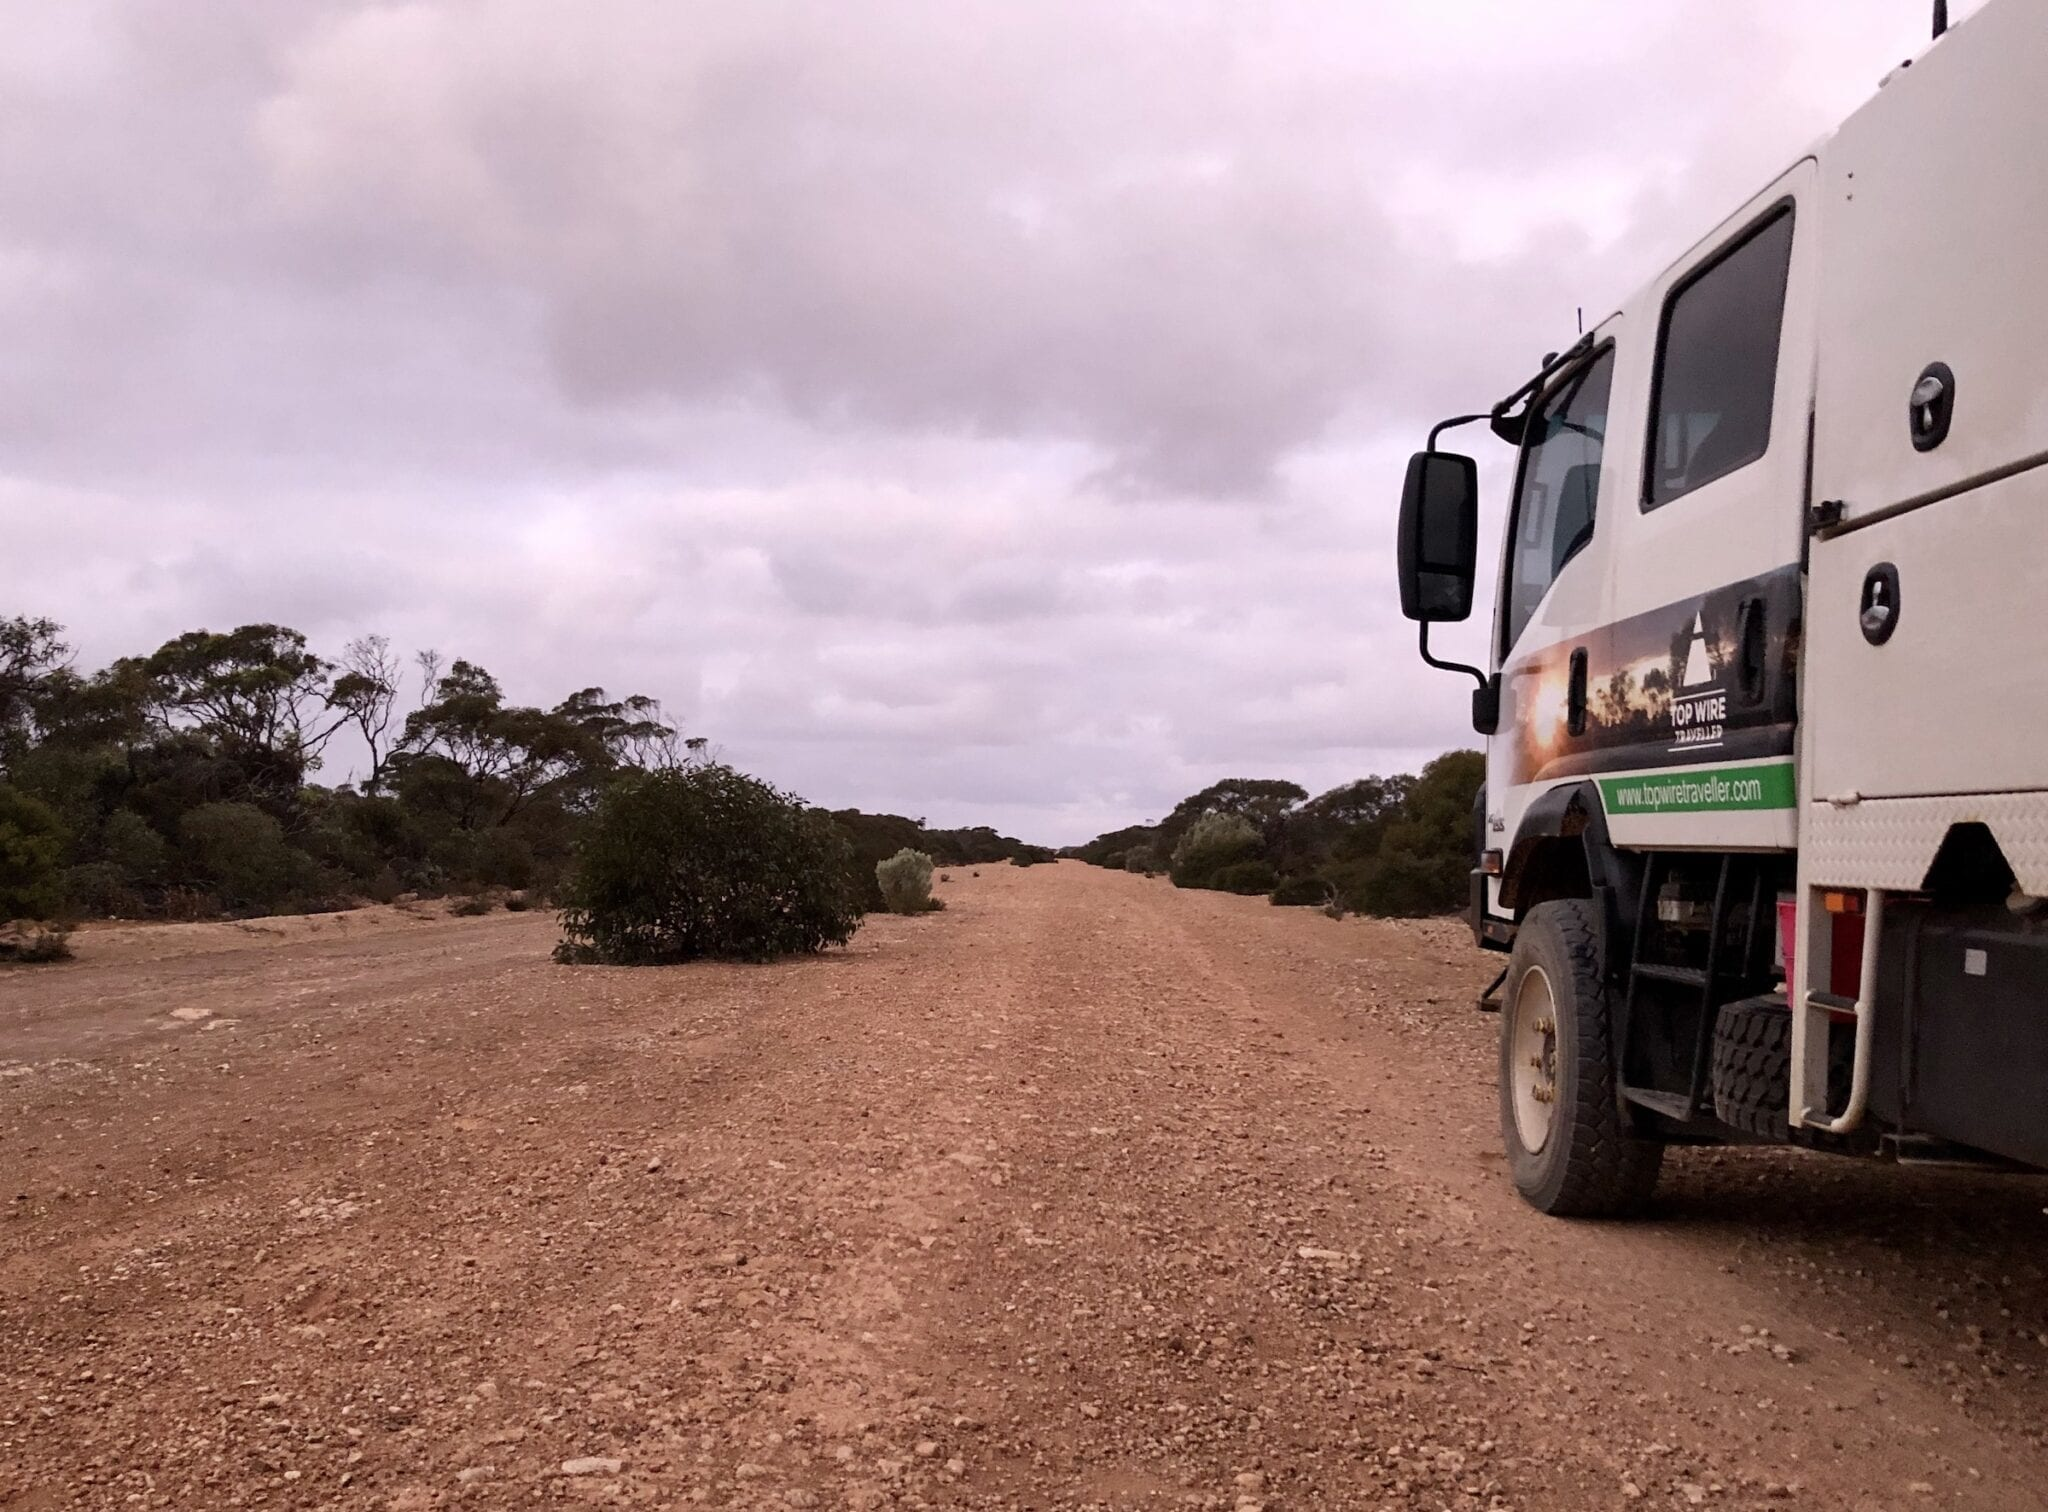 Travelling the Old Eyre Highway, Nullarbor Plain SA.